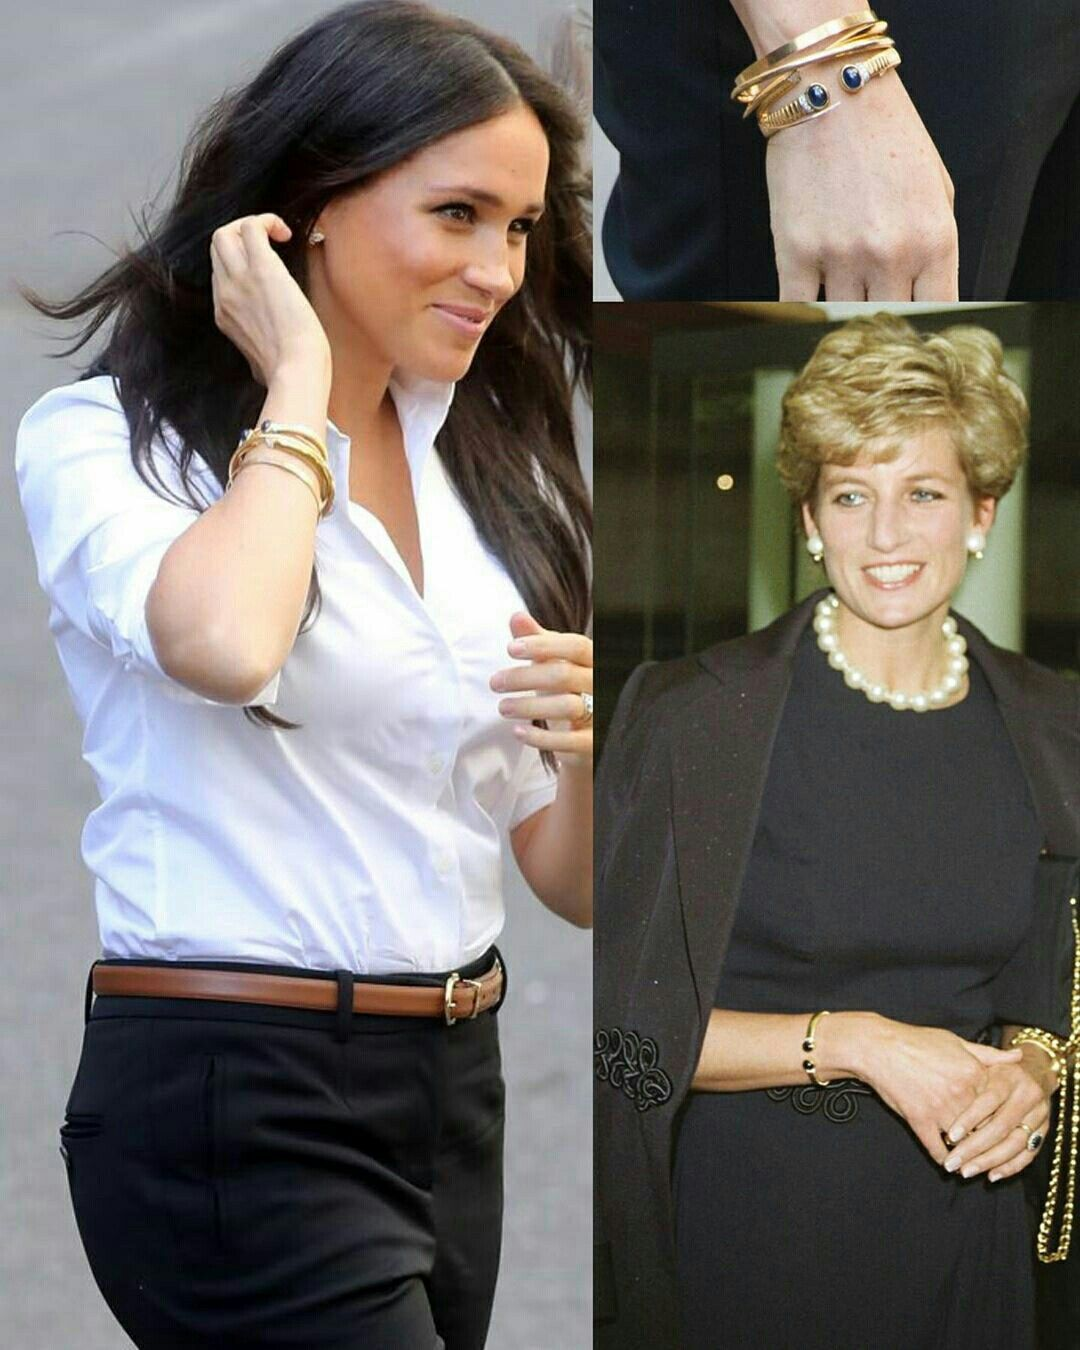 meghan markle the duchess of sussex wearing princess diana jewelry princess meghan prince harry and megan meghan markle style meghan markle the duchess of sussex